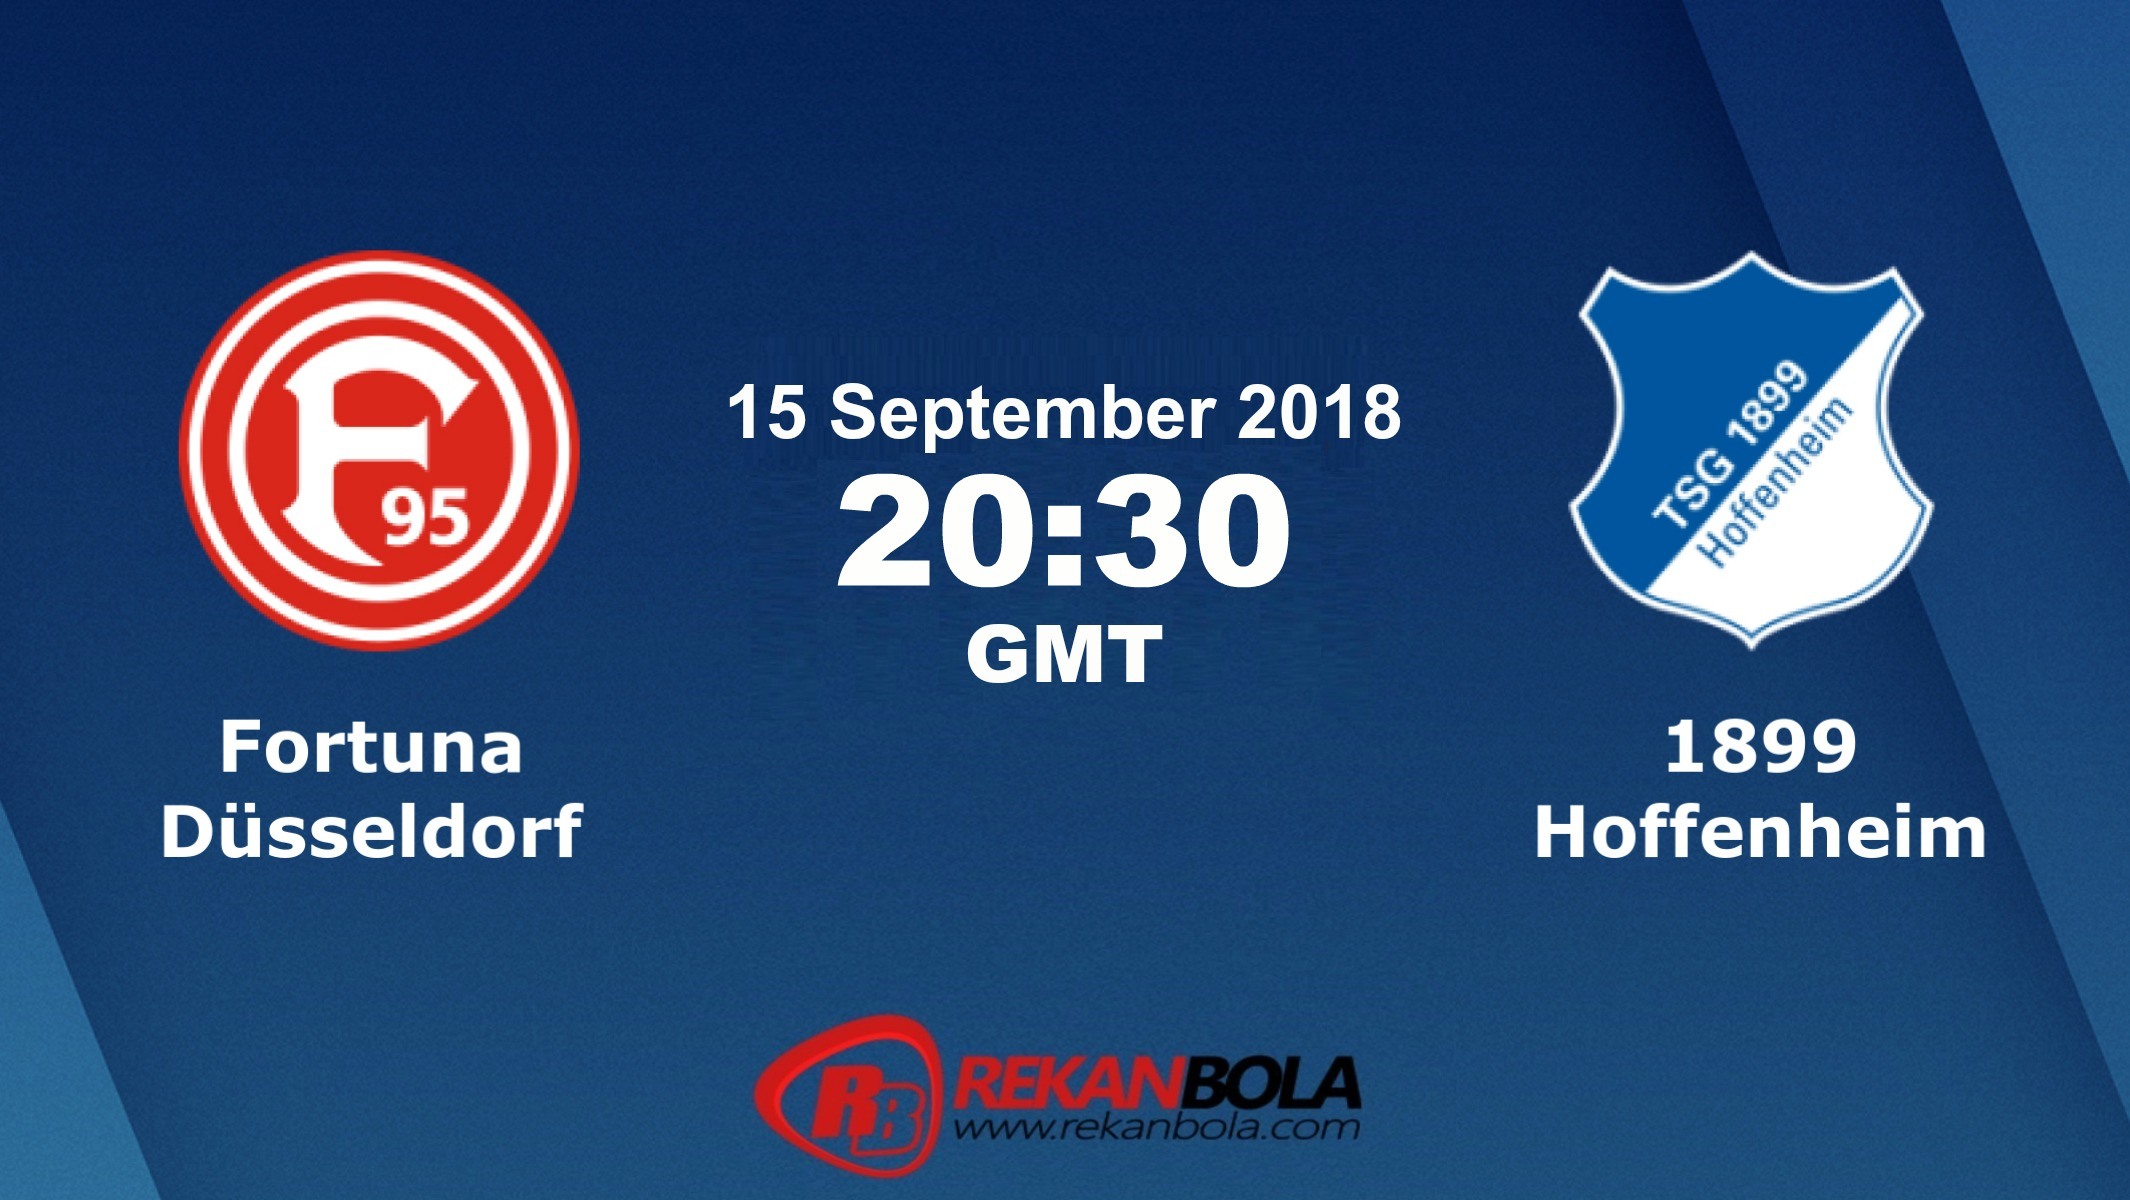 Nonton Siaran Live Streaming Dusseldorf Vs Hoffenheim 15 September 2018